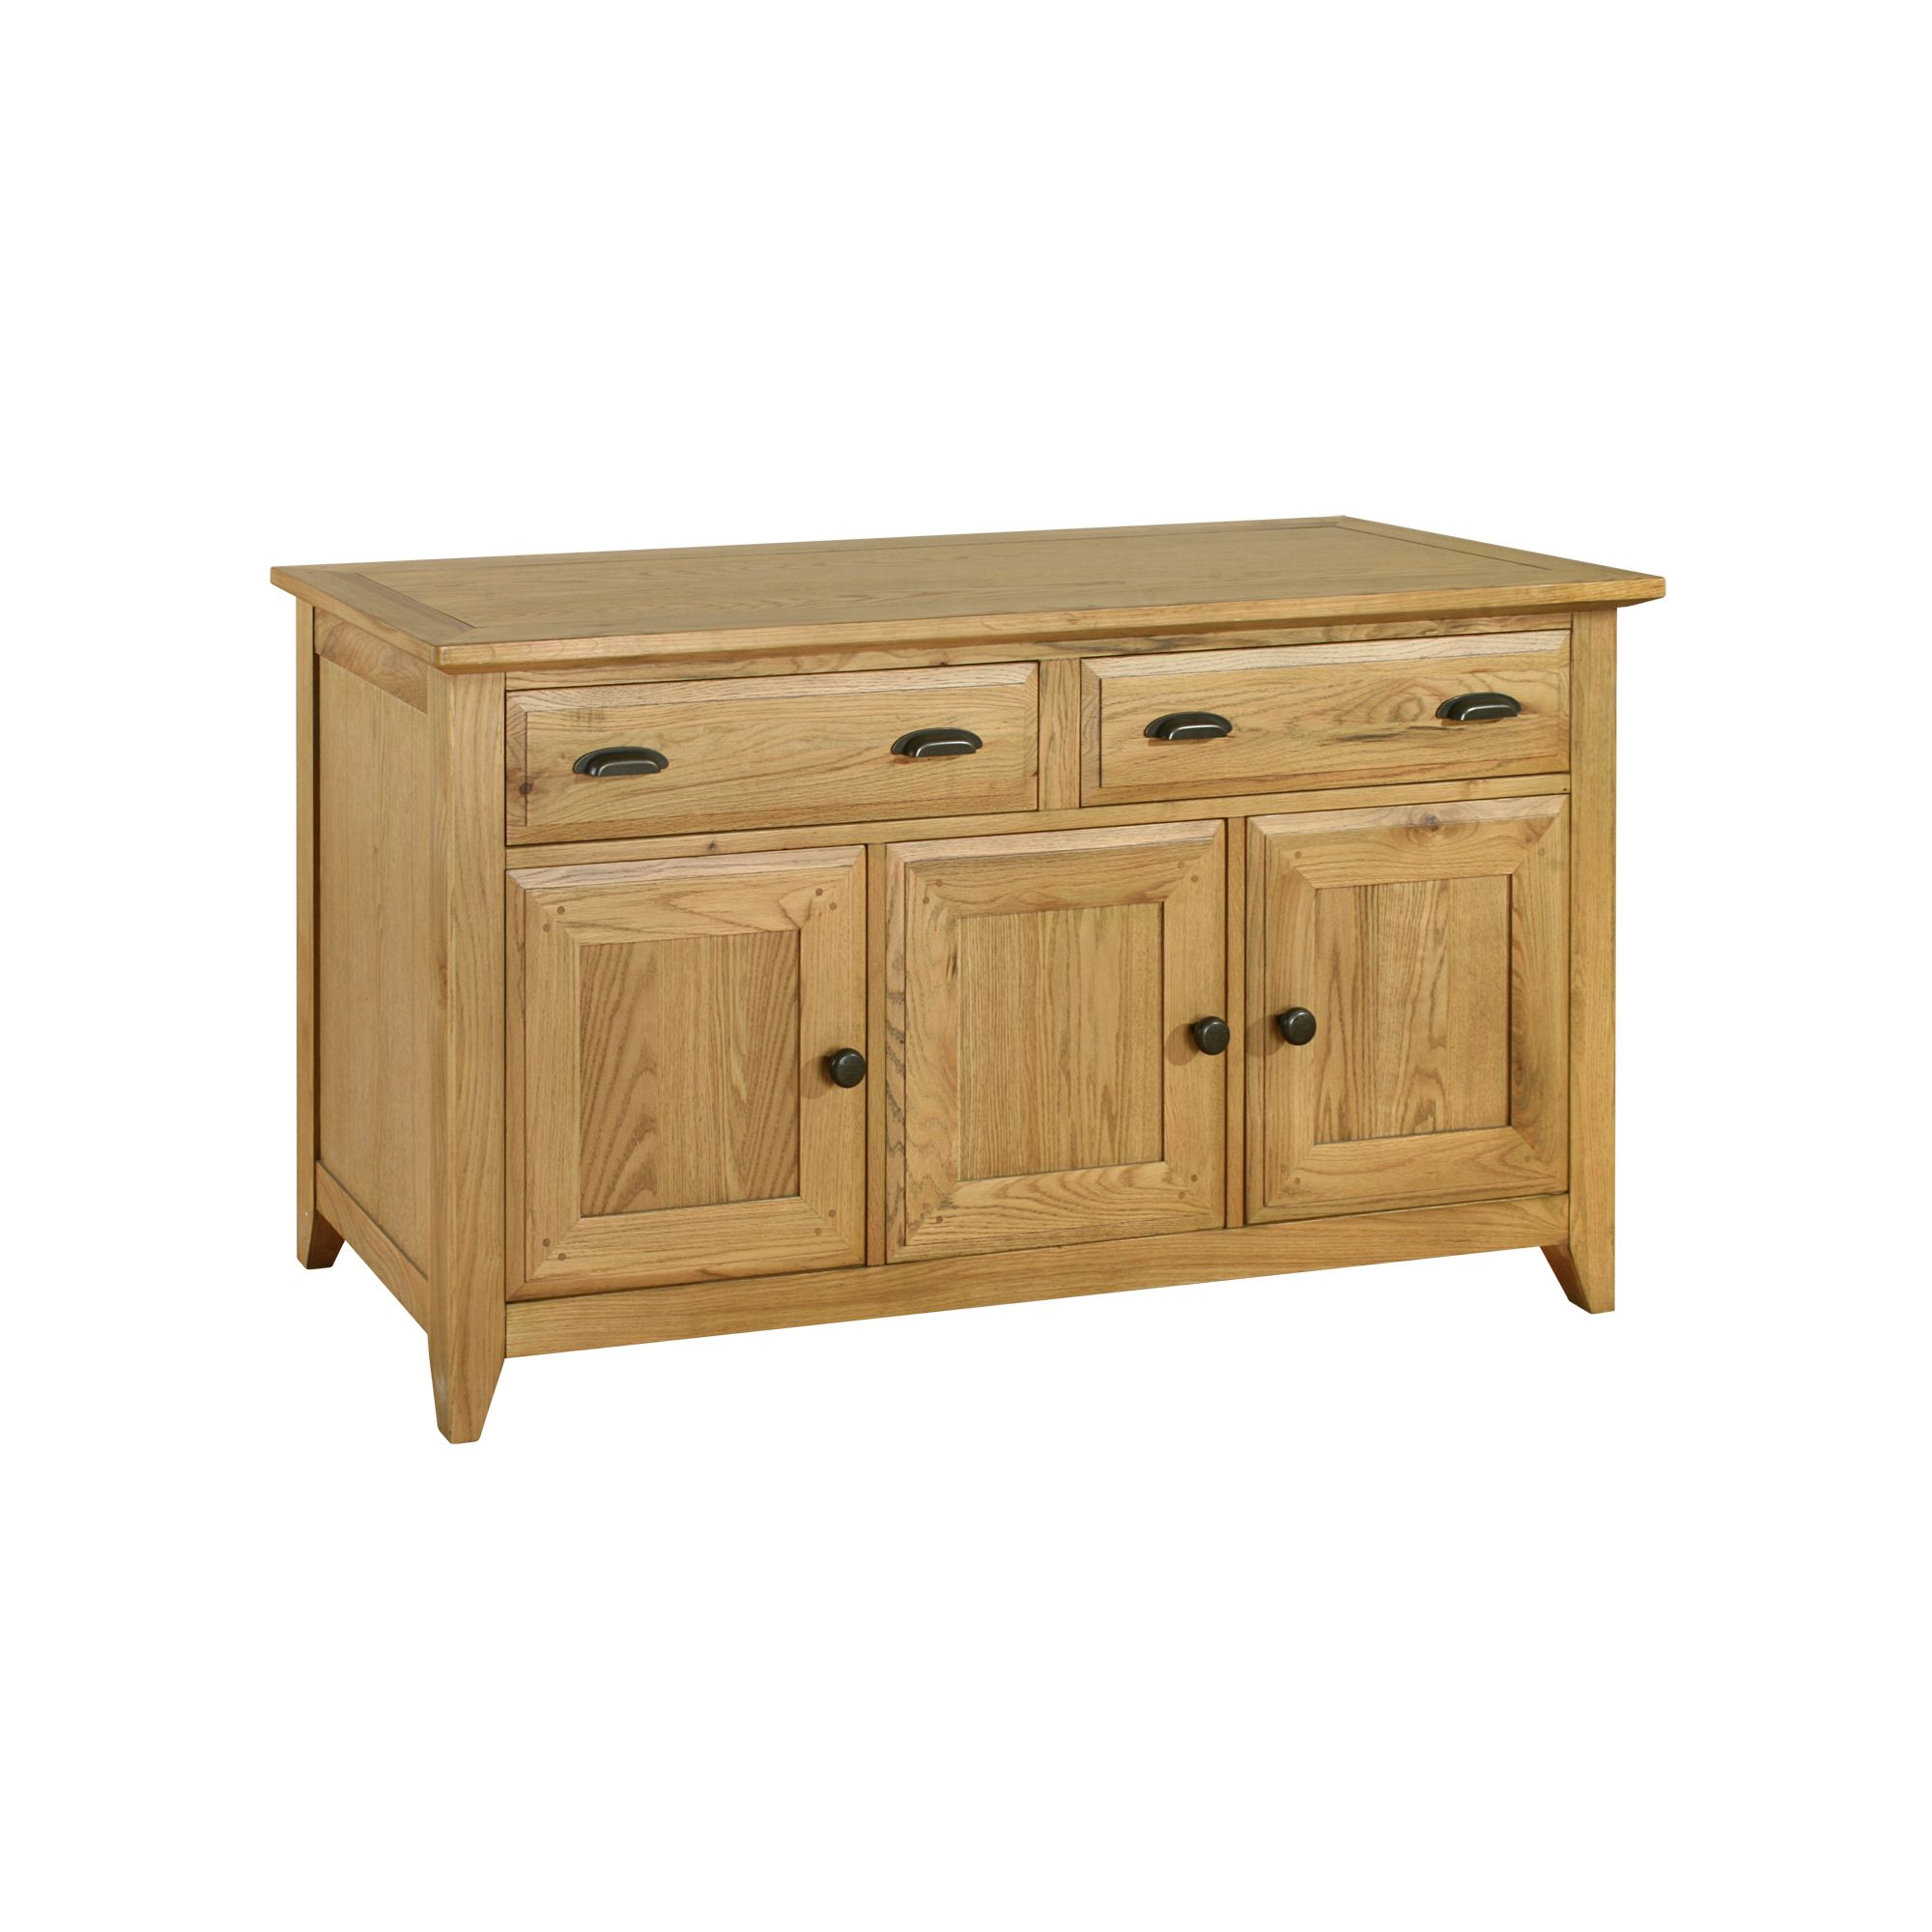 Alterton Furniture Mississippi Large Sideboard at Tesco Direct